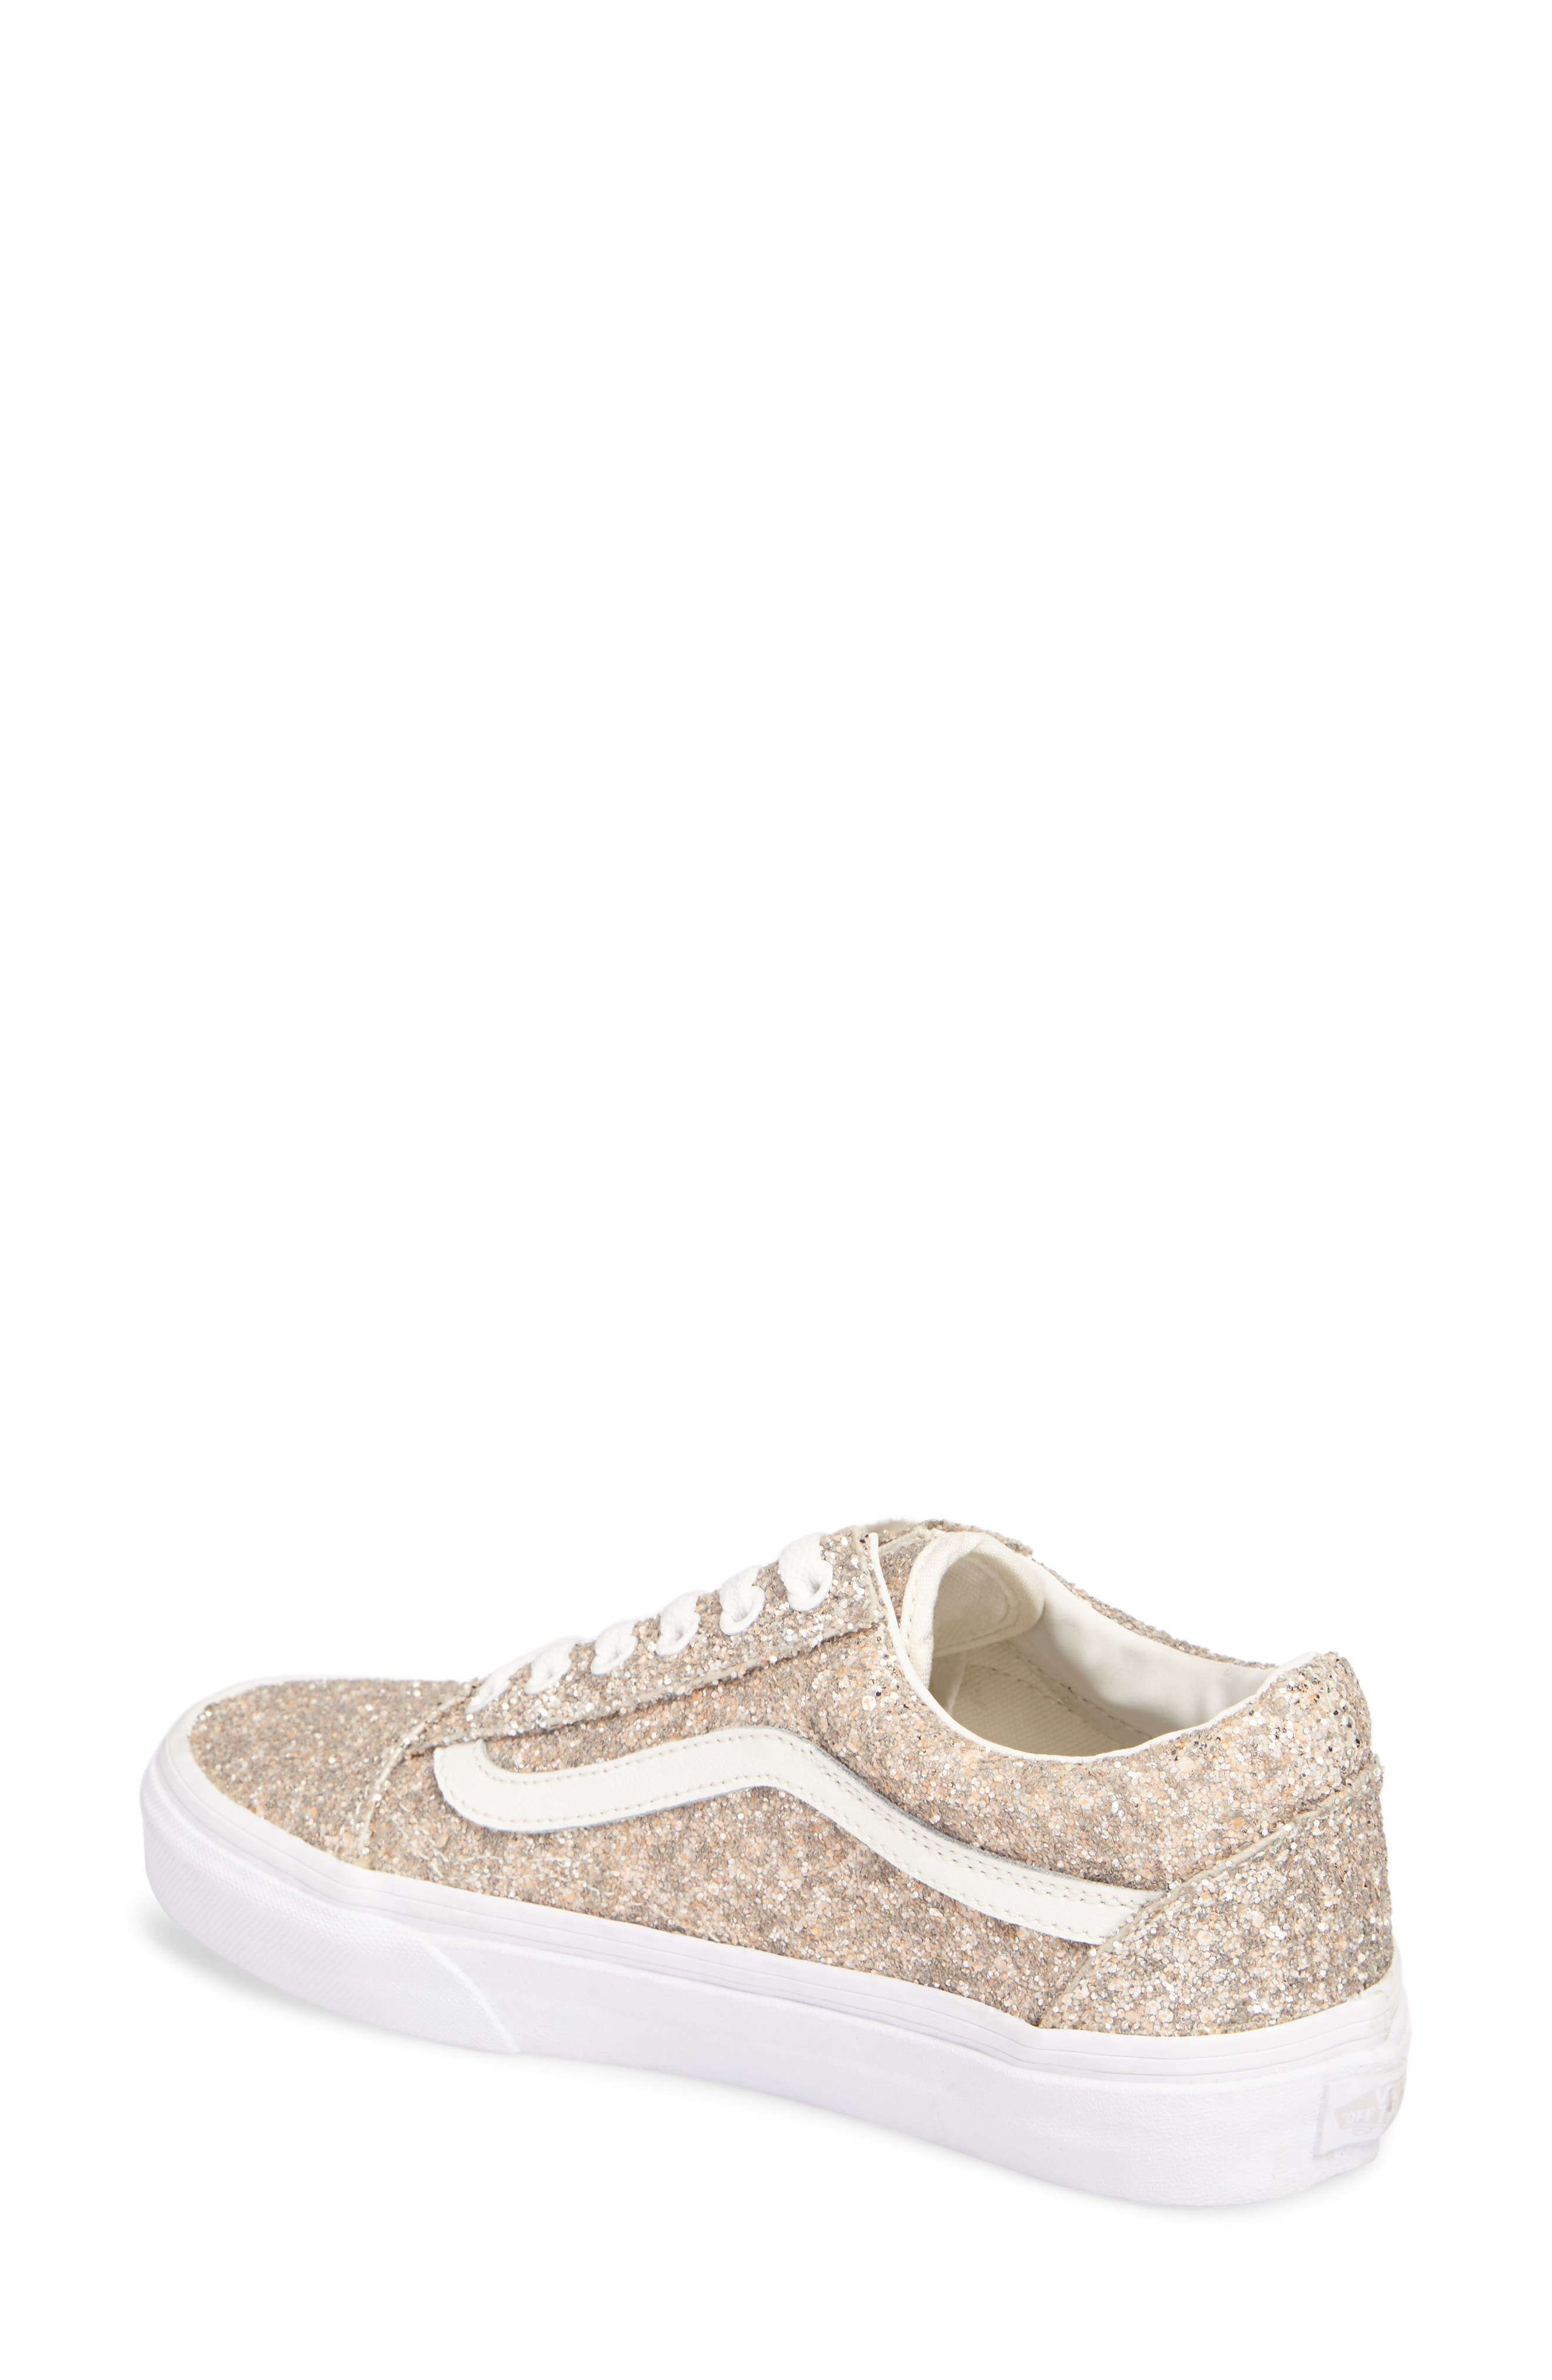 Alternate Image 2  - Vans Old Skool Sneaker (Women)